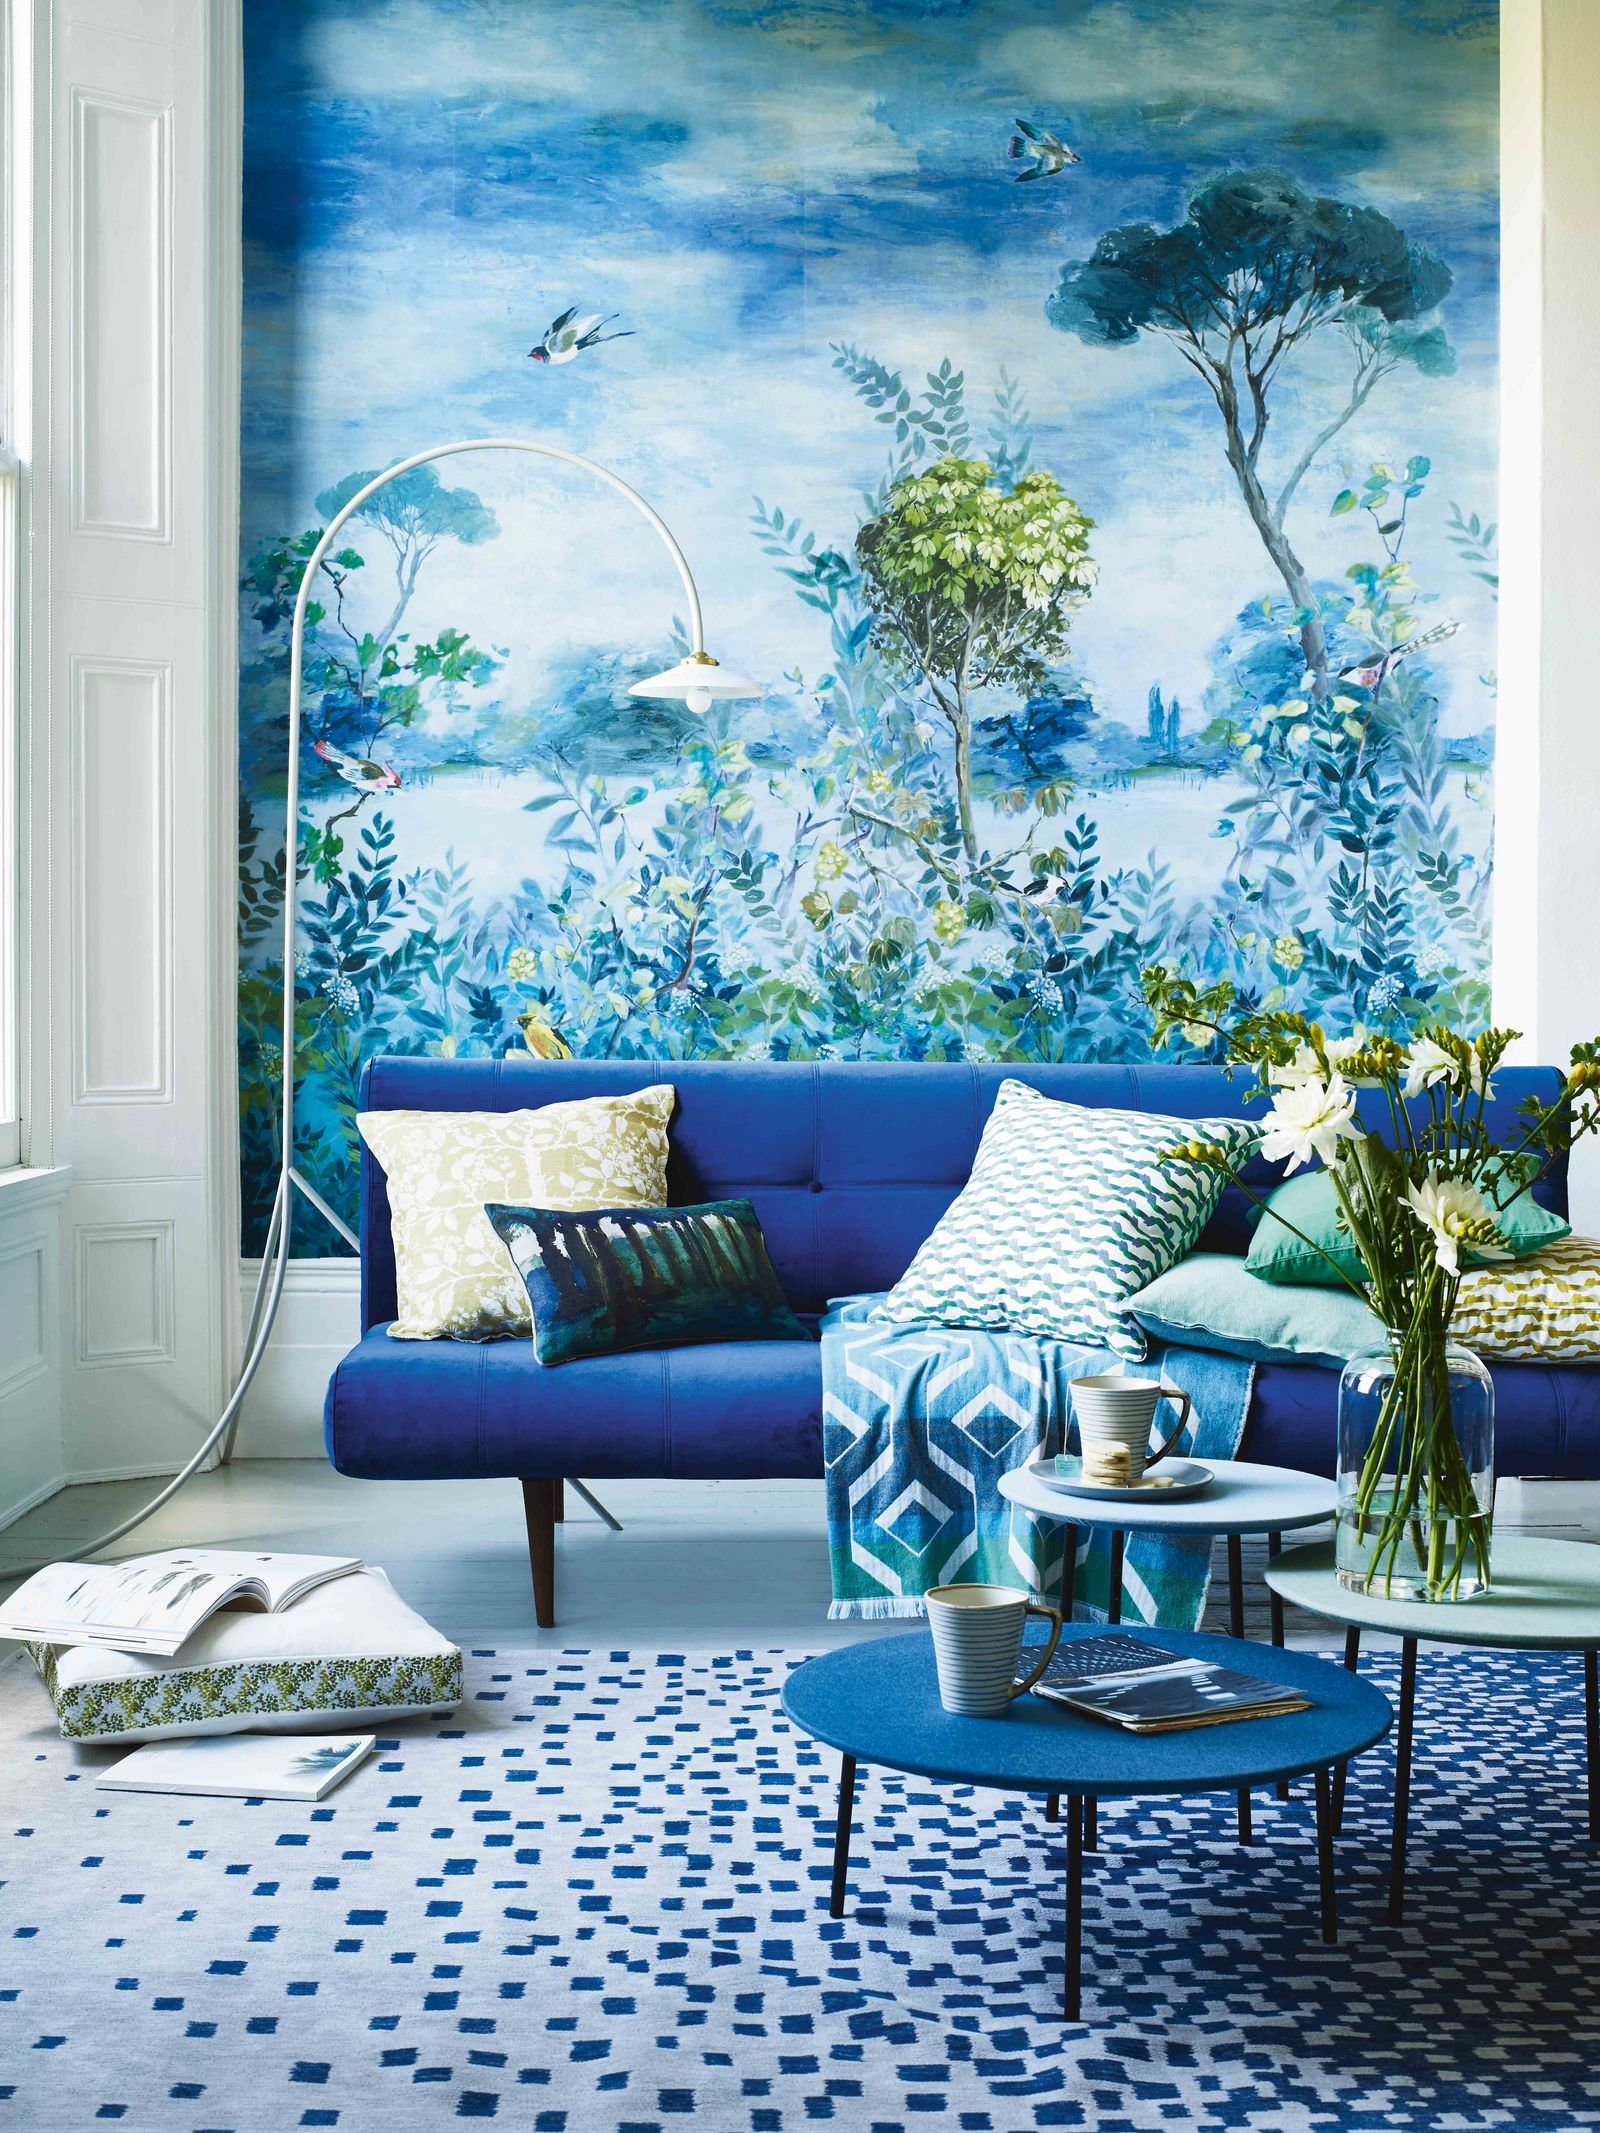 How To Bring The Outside In With Nature Inspired Wallpaper Murals Winter Interior Design Interior Wallpaper Decor